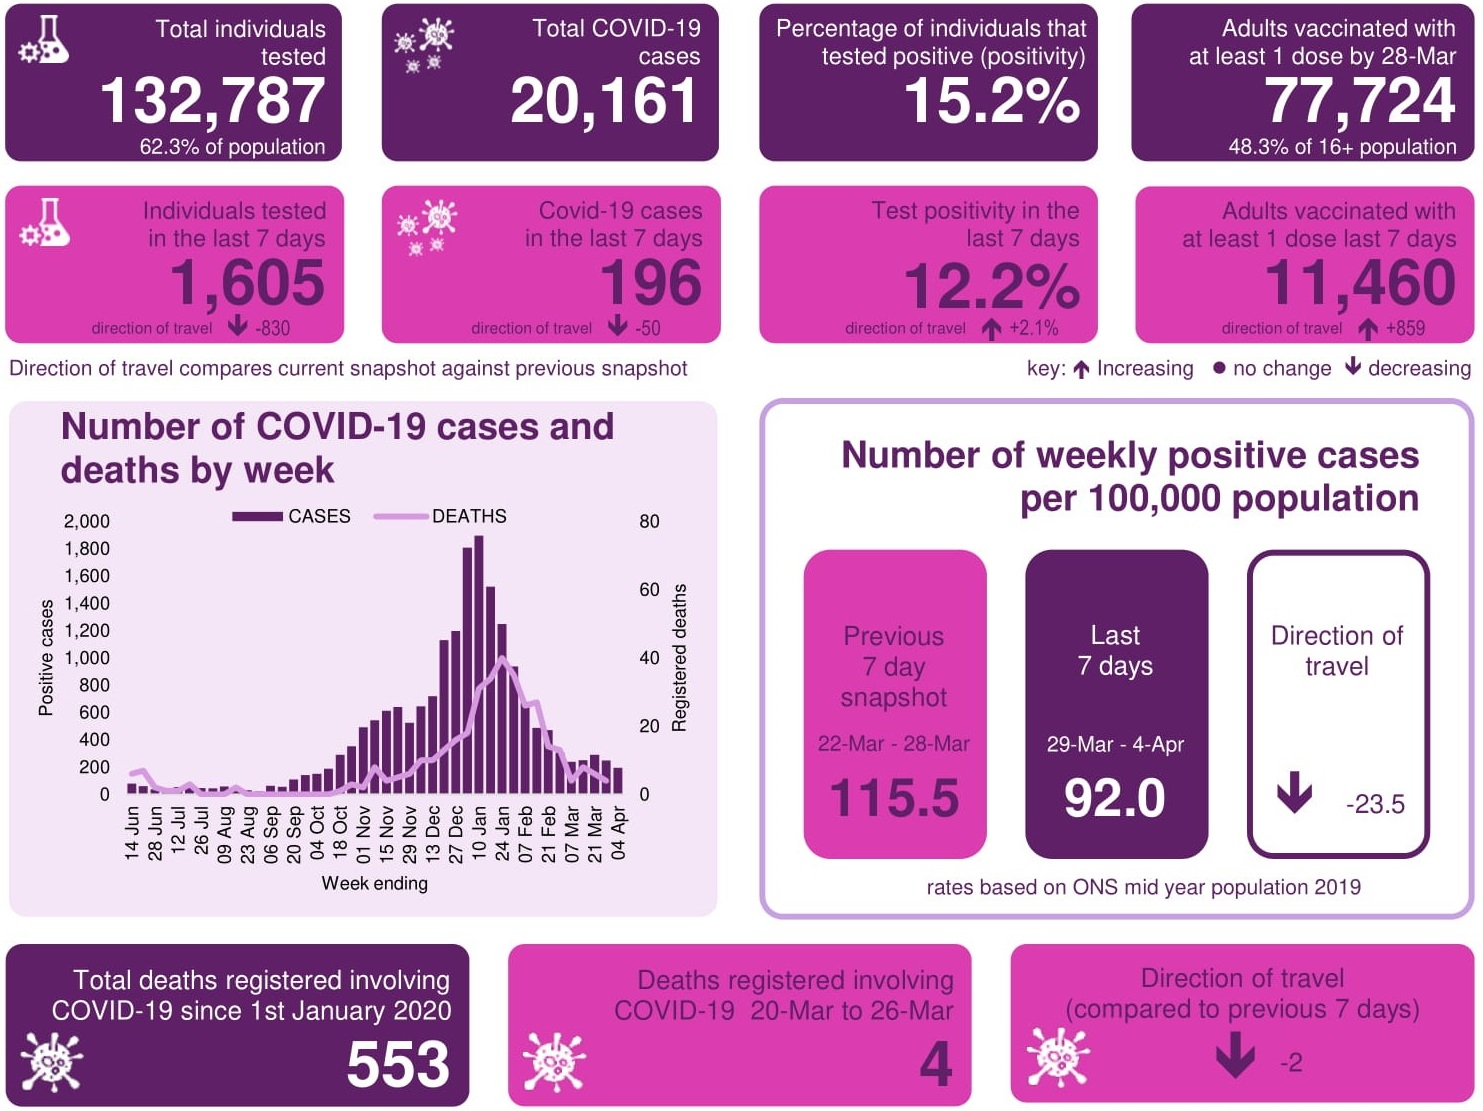 Snapshot image showing coronavirus data in Luton - see text below for text version of statistics.